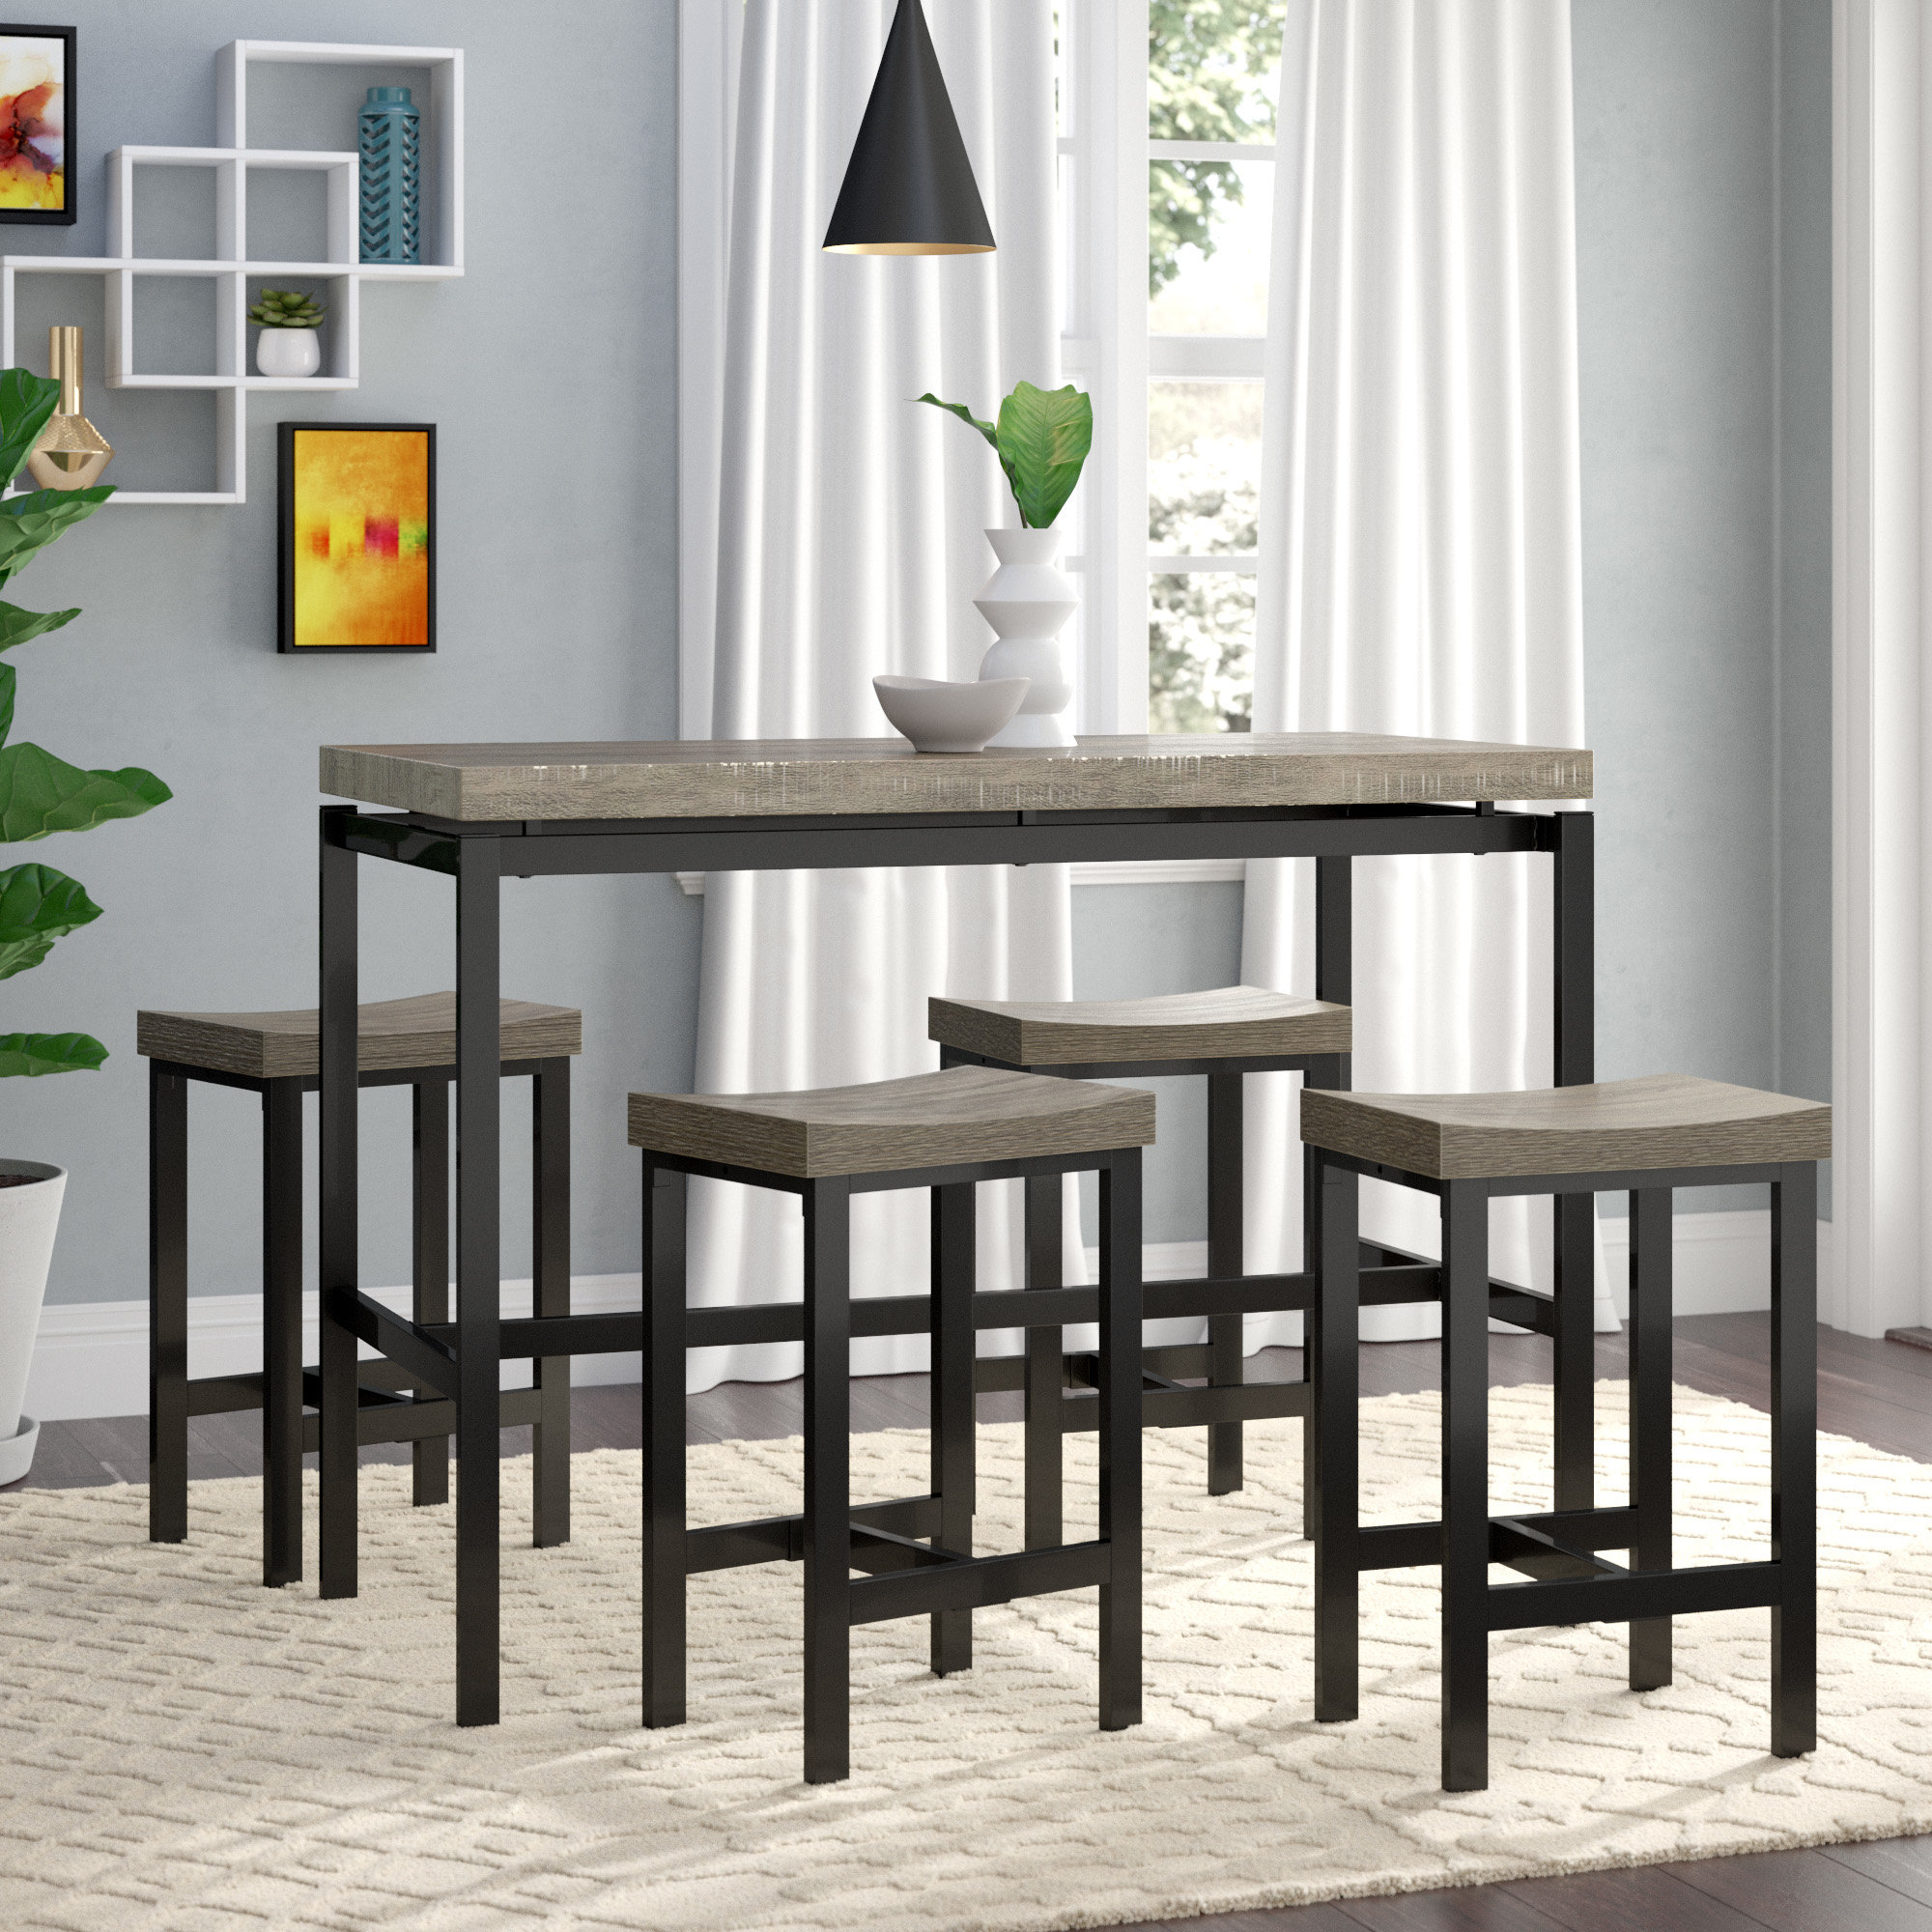 Wayfair Within Well Known Miskell 5 Piece Dining Sets (View 10 of 25)